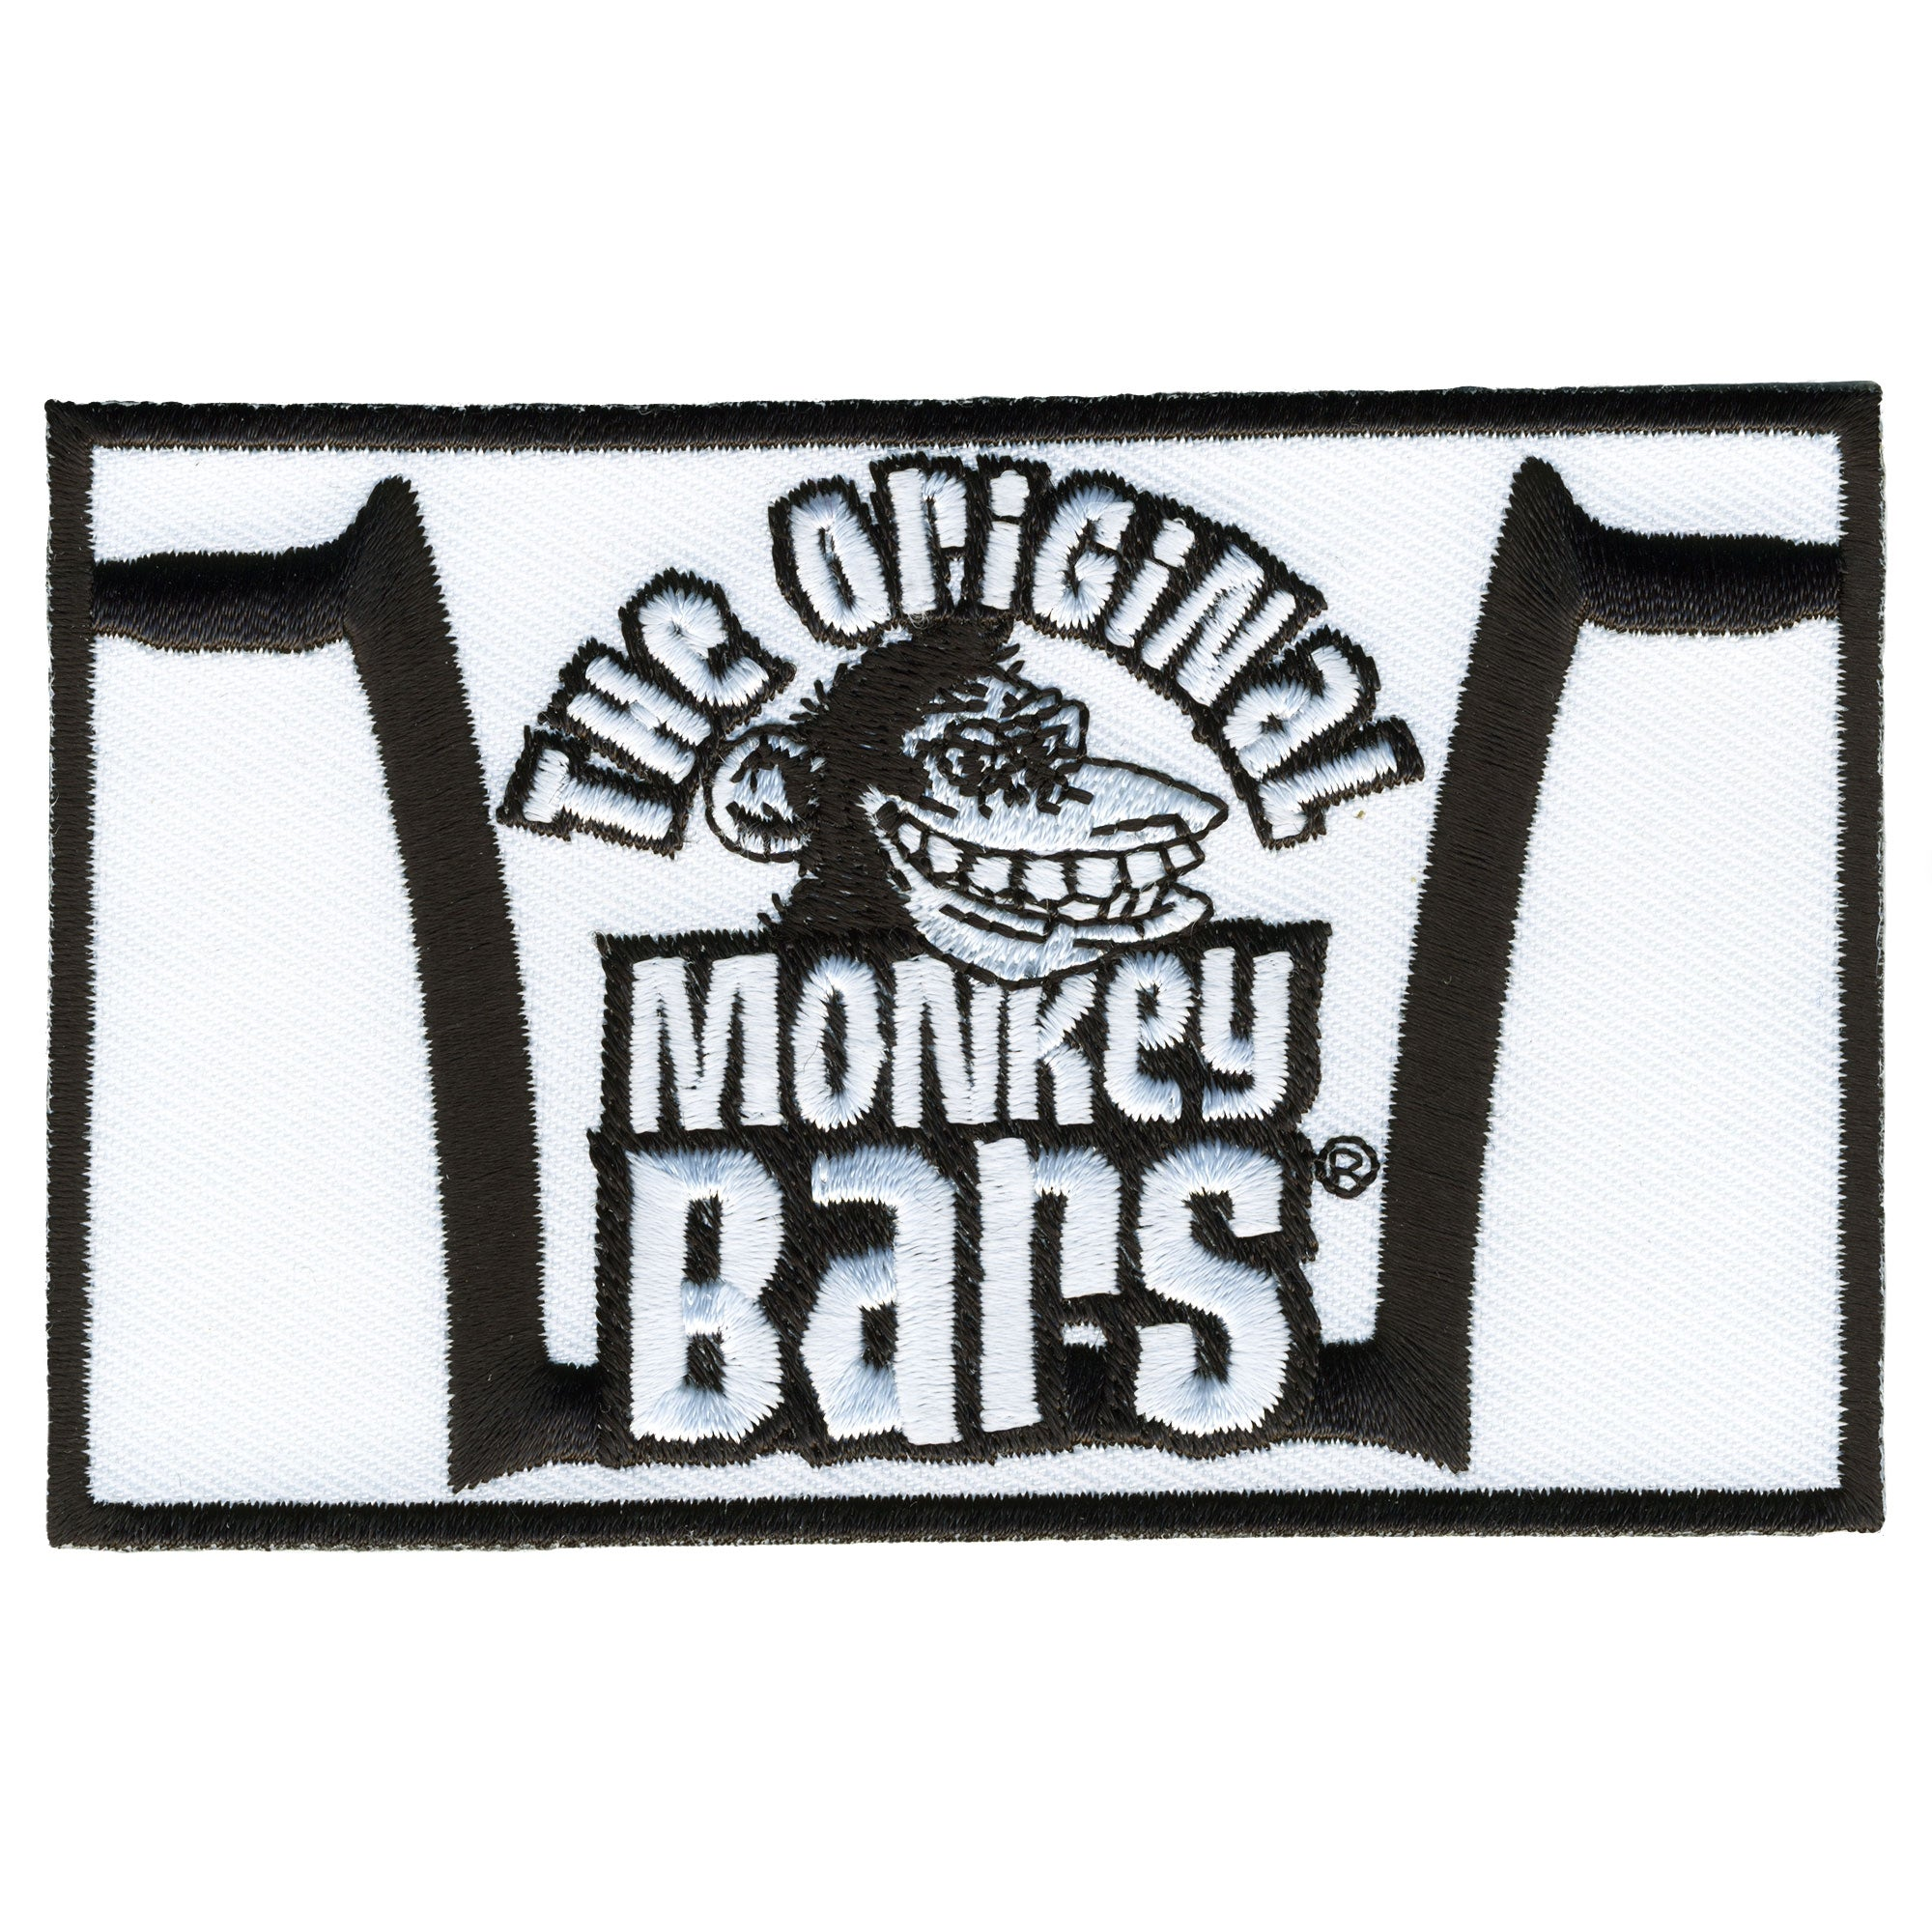 Official Paul Yaffe's Bagger Nation Monkey Bars Patch 4""